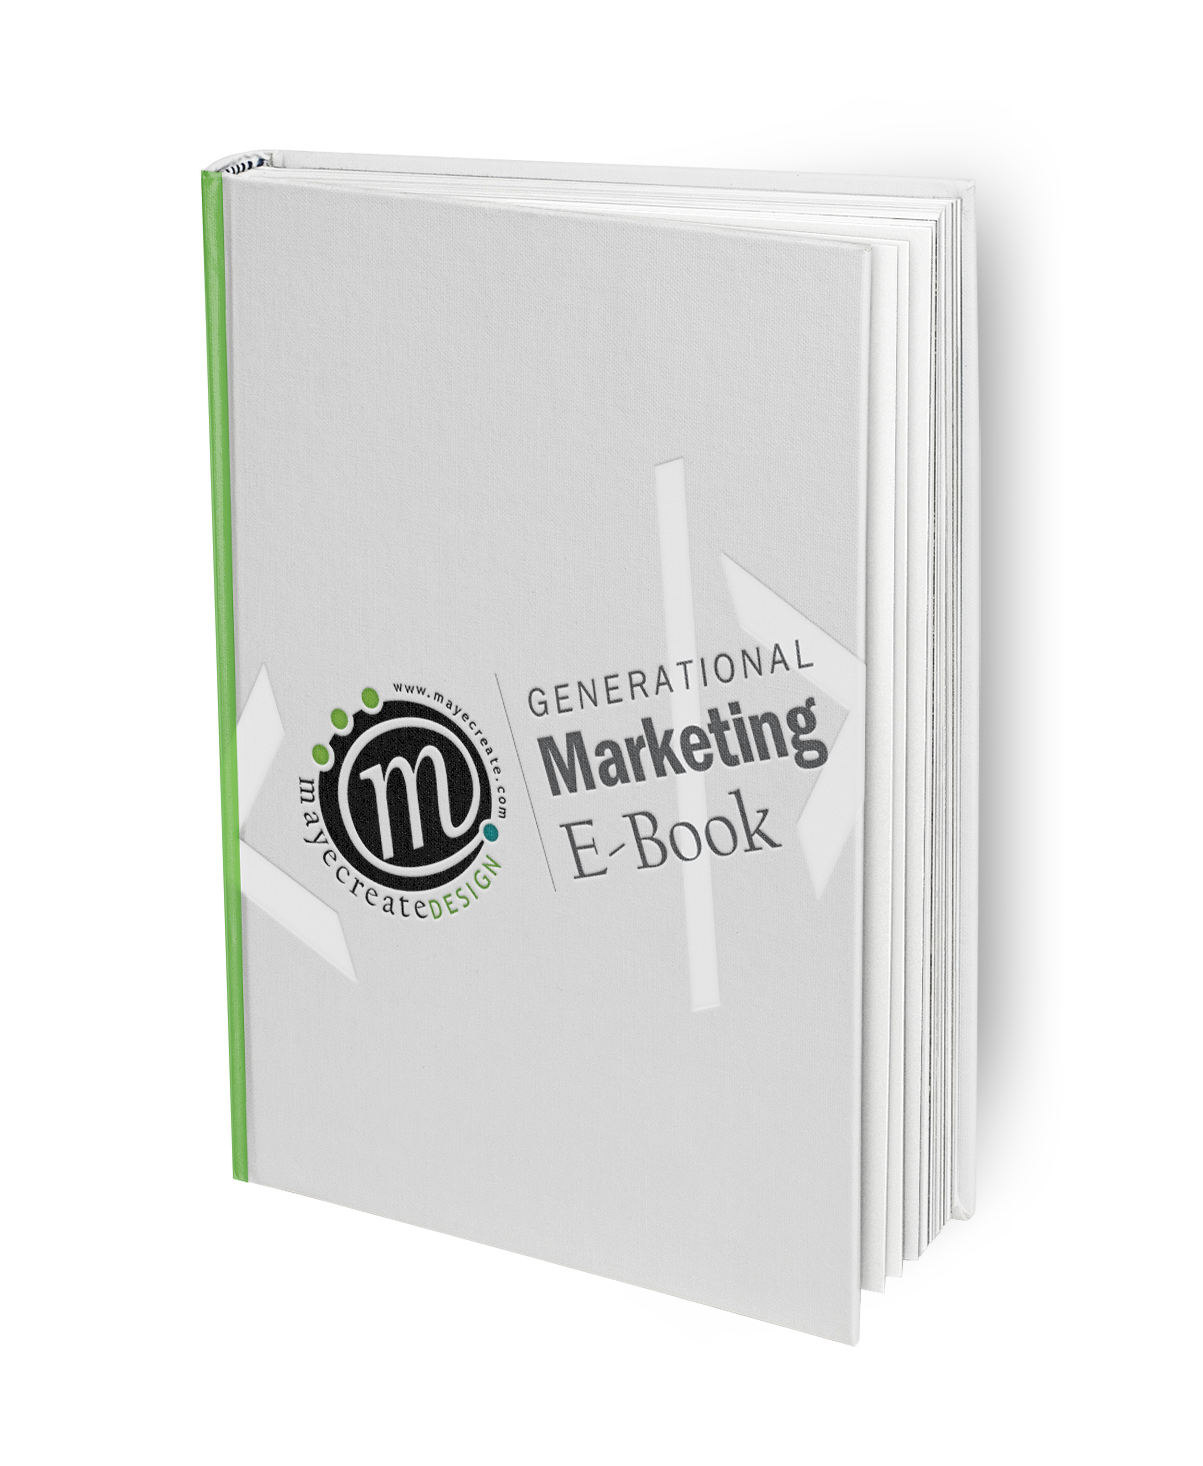 Generational Marketing E-Book